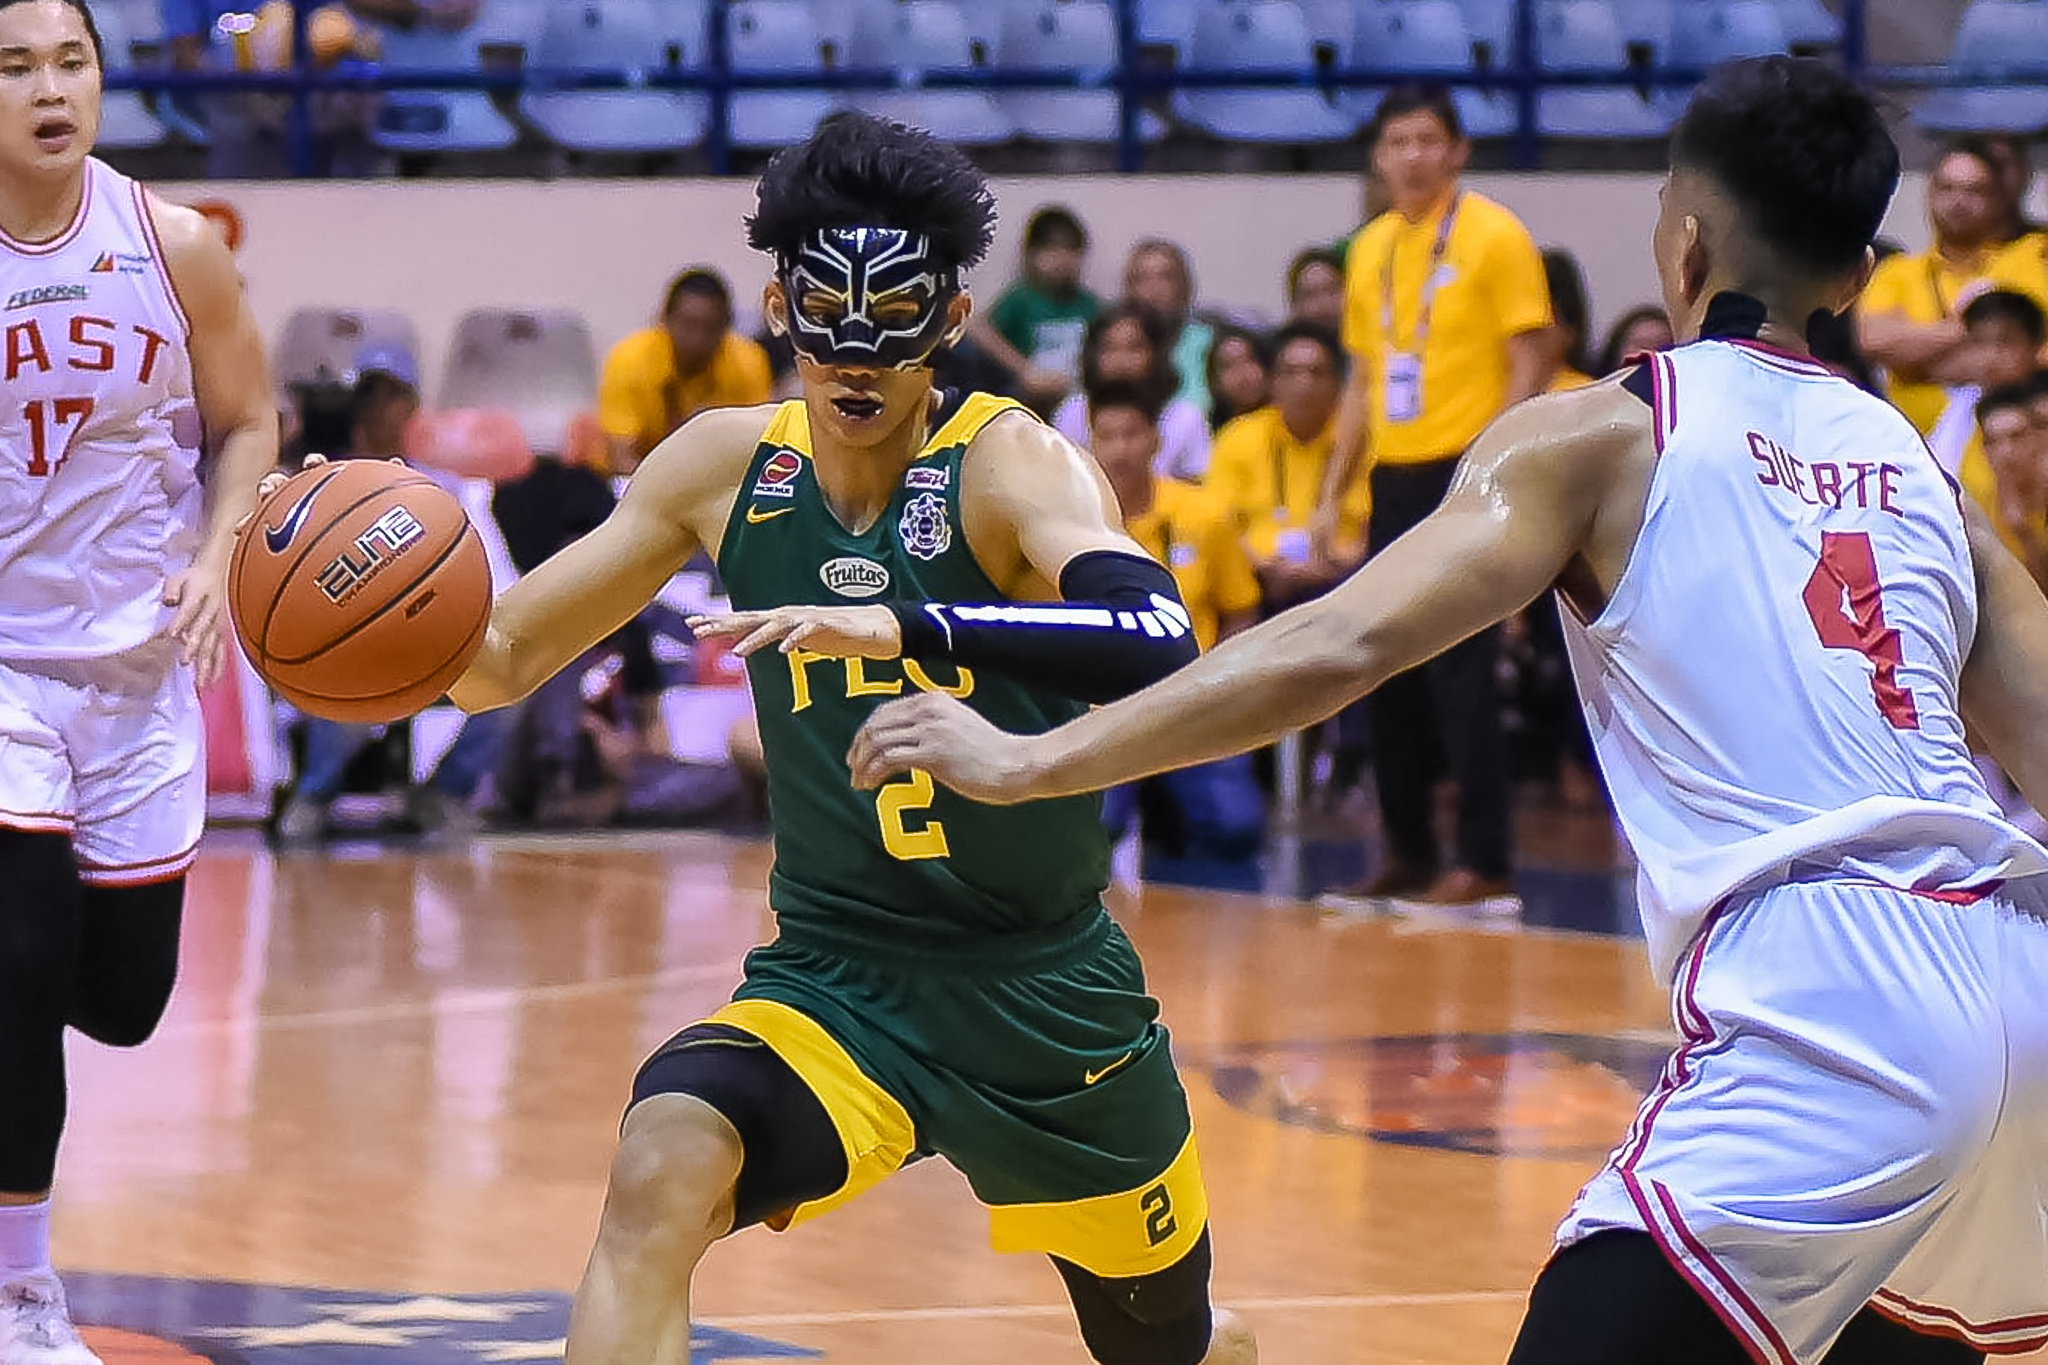 FEU hammers UE for 24-point win to book semis seat